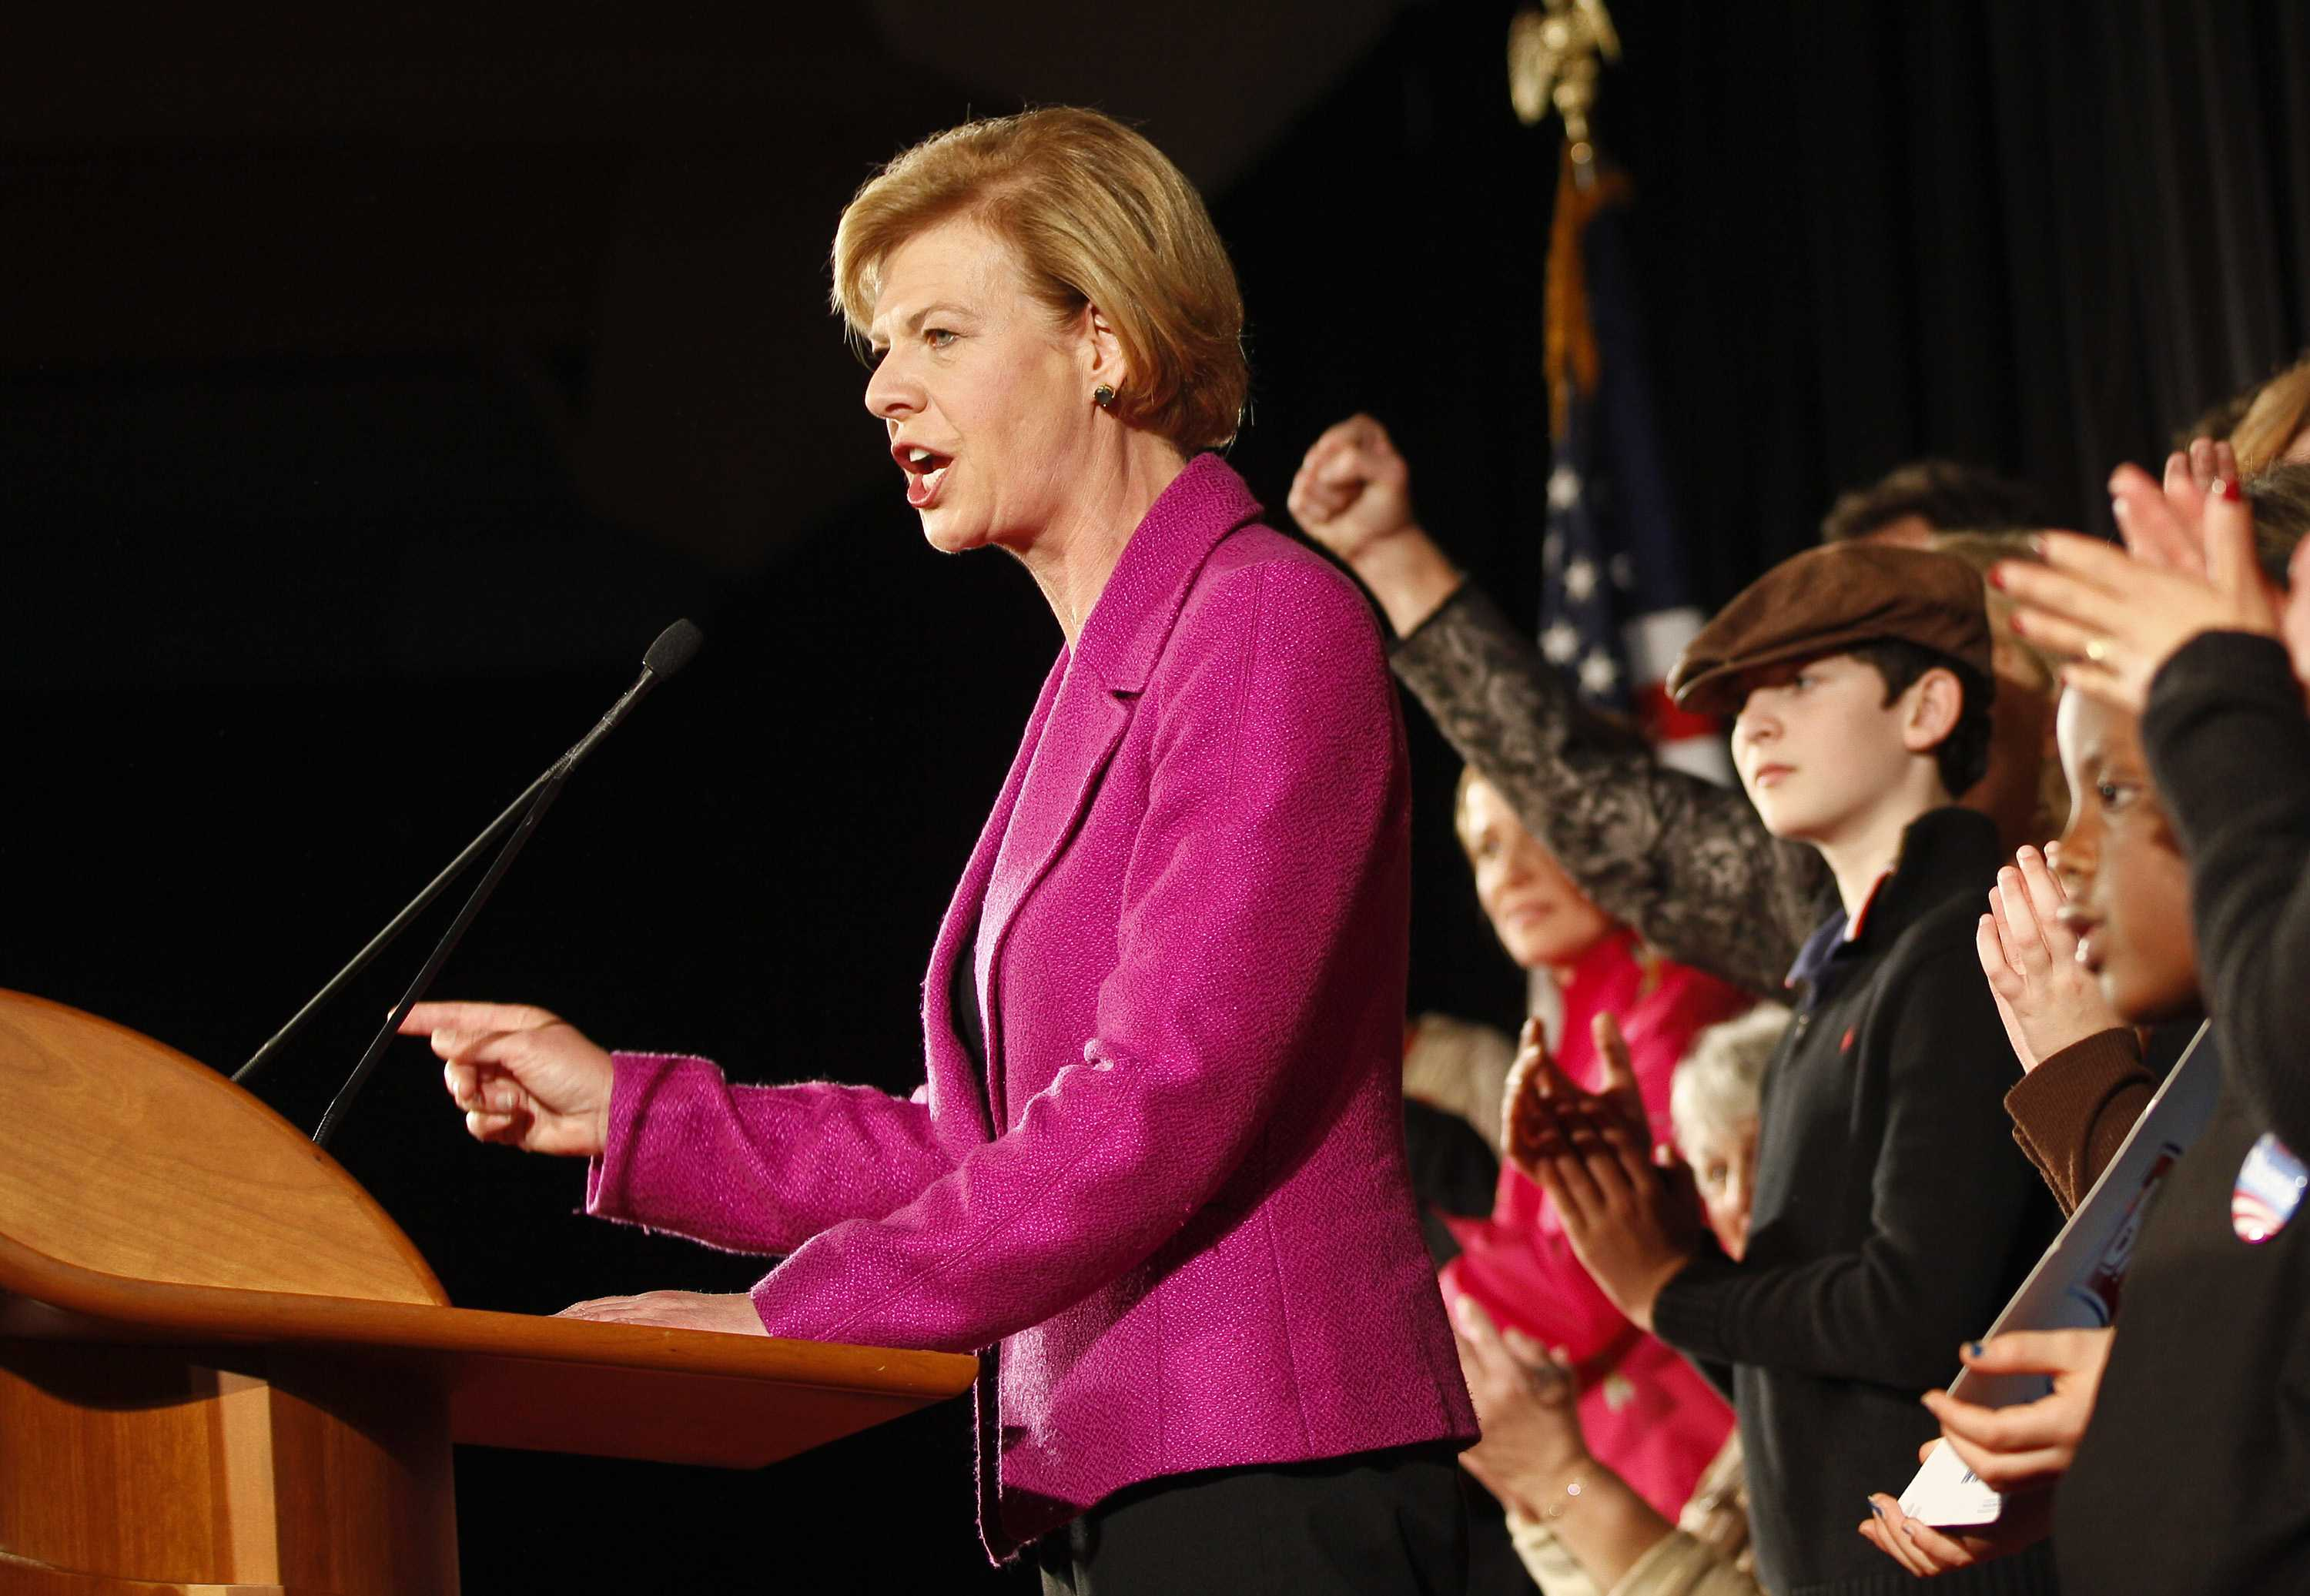 U.S. Rep. Tammy Baldwin, D-Wis., make her victory speech Tuesday, Nov. 6, 2012, in Madison, Wis. Baldwin beat former Wisconsin Gov. Tommy Thompson in the race for Wisconsin's U.S. Senate seat. Photo by Andy Manis/ Associated Press